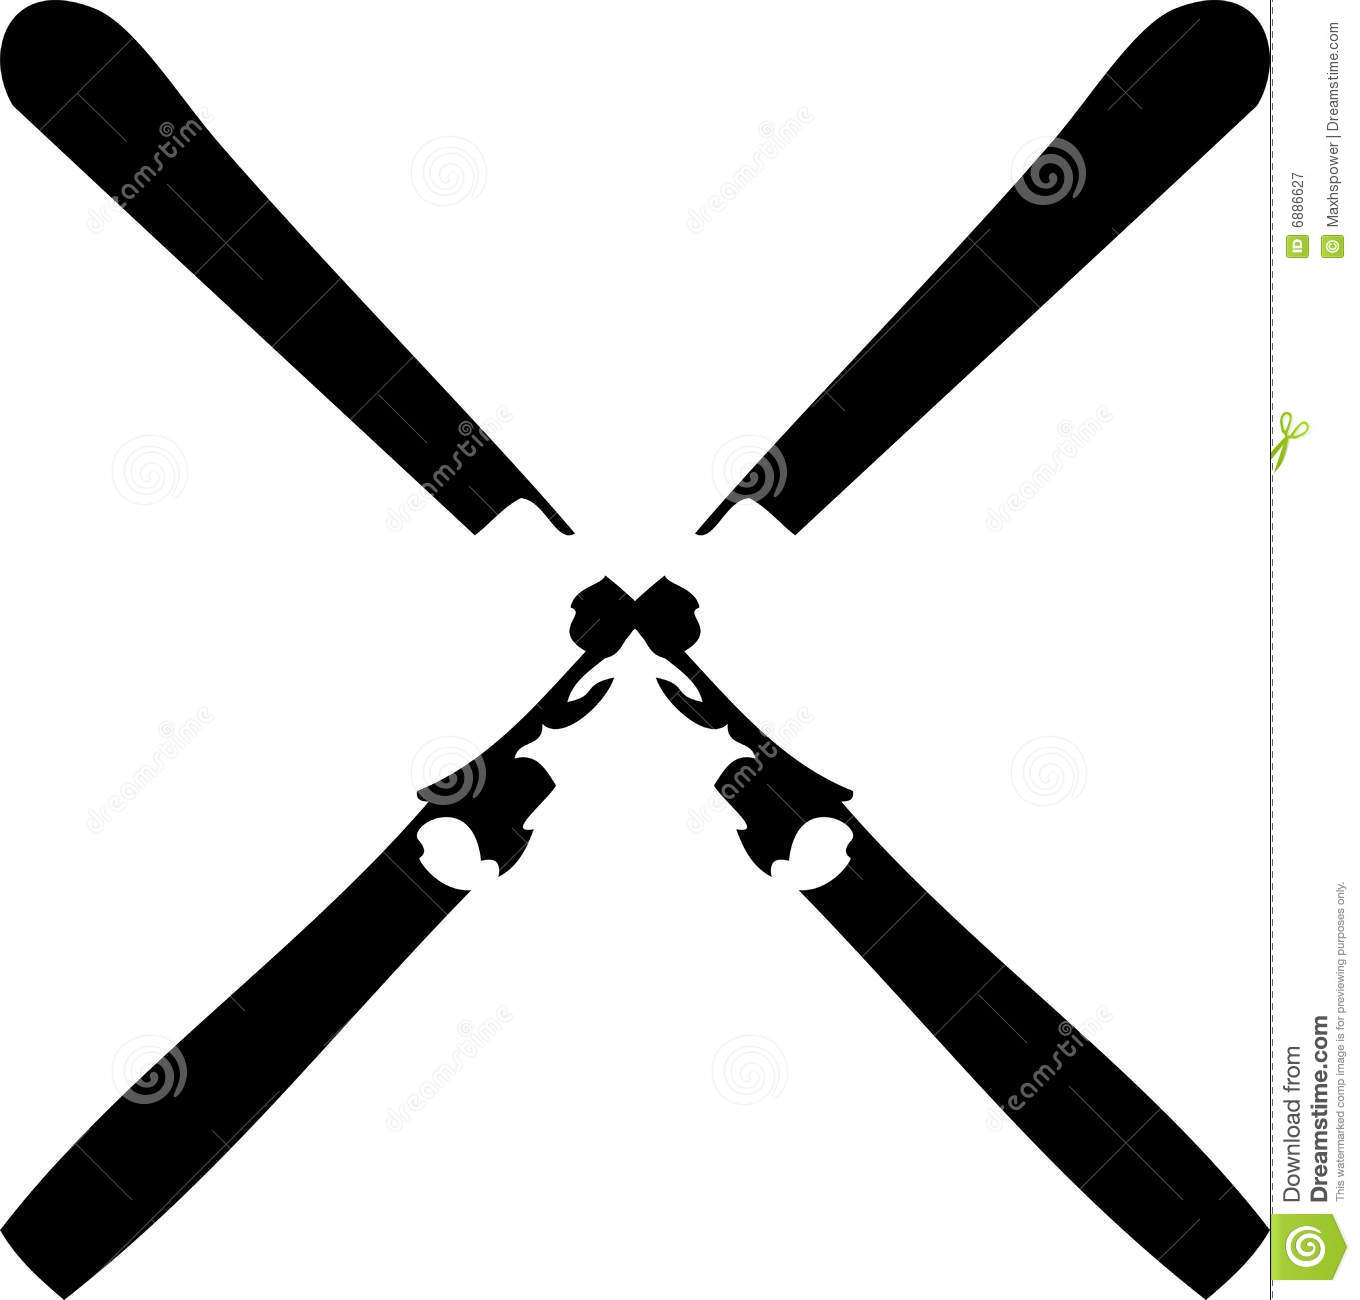 ski crossed royalty free stock photography image 6886627 camping clip art free downloads cutting files free clipart download camping